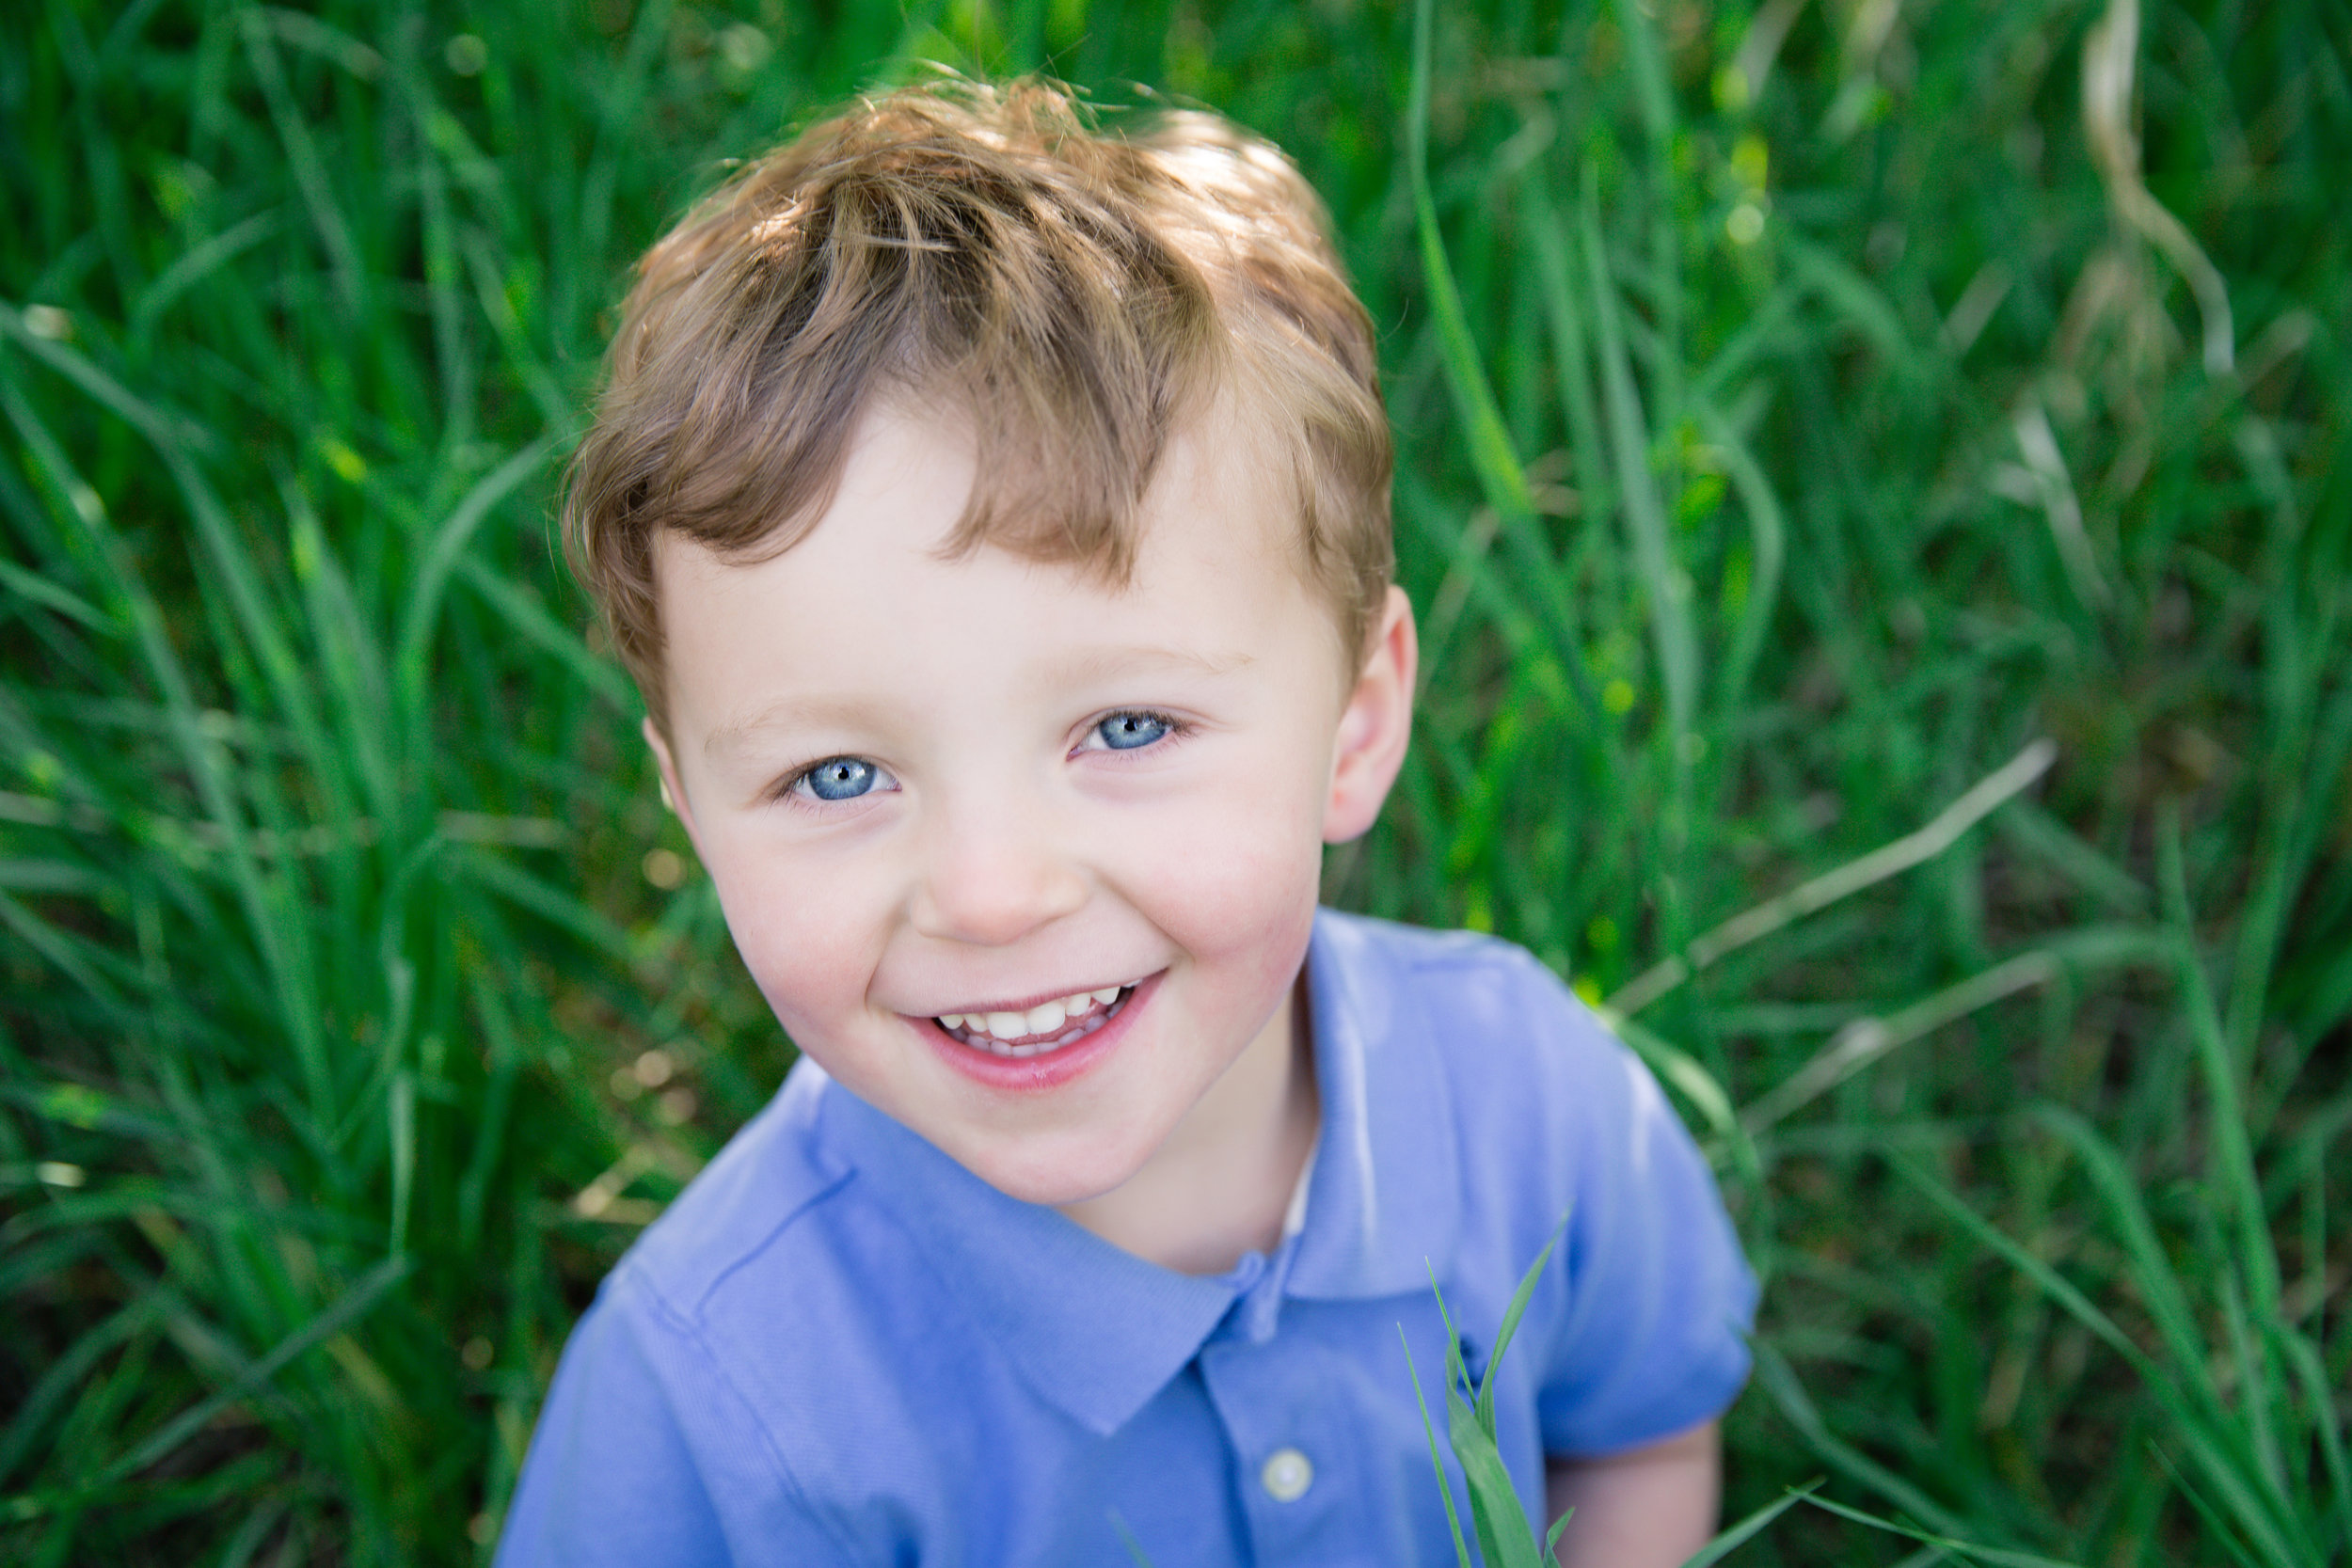 Boy in a blue shirt, smiling and looking at the camera. Calgary child photographer. Milashka Photography